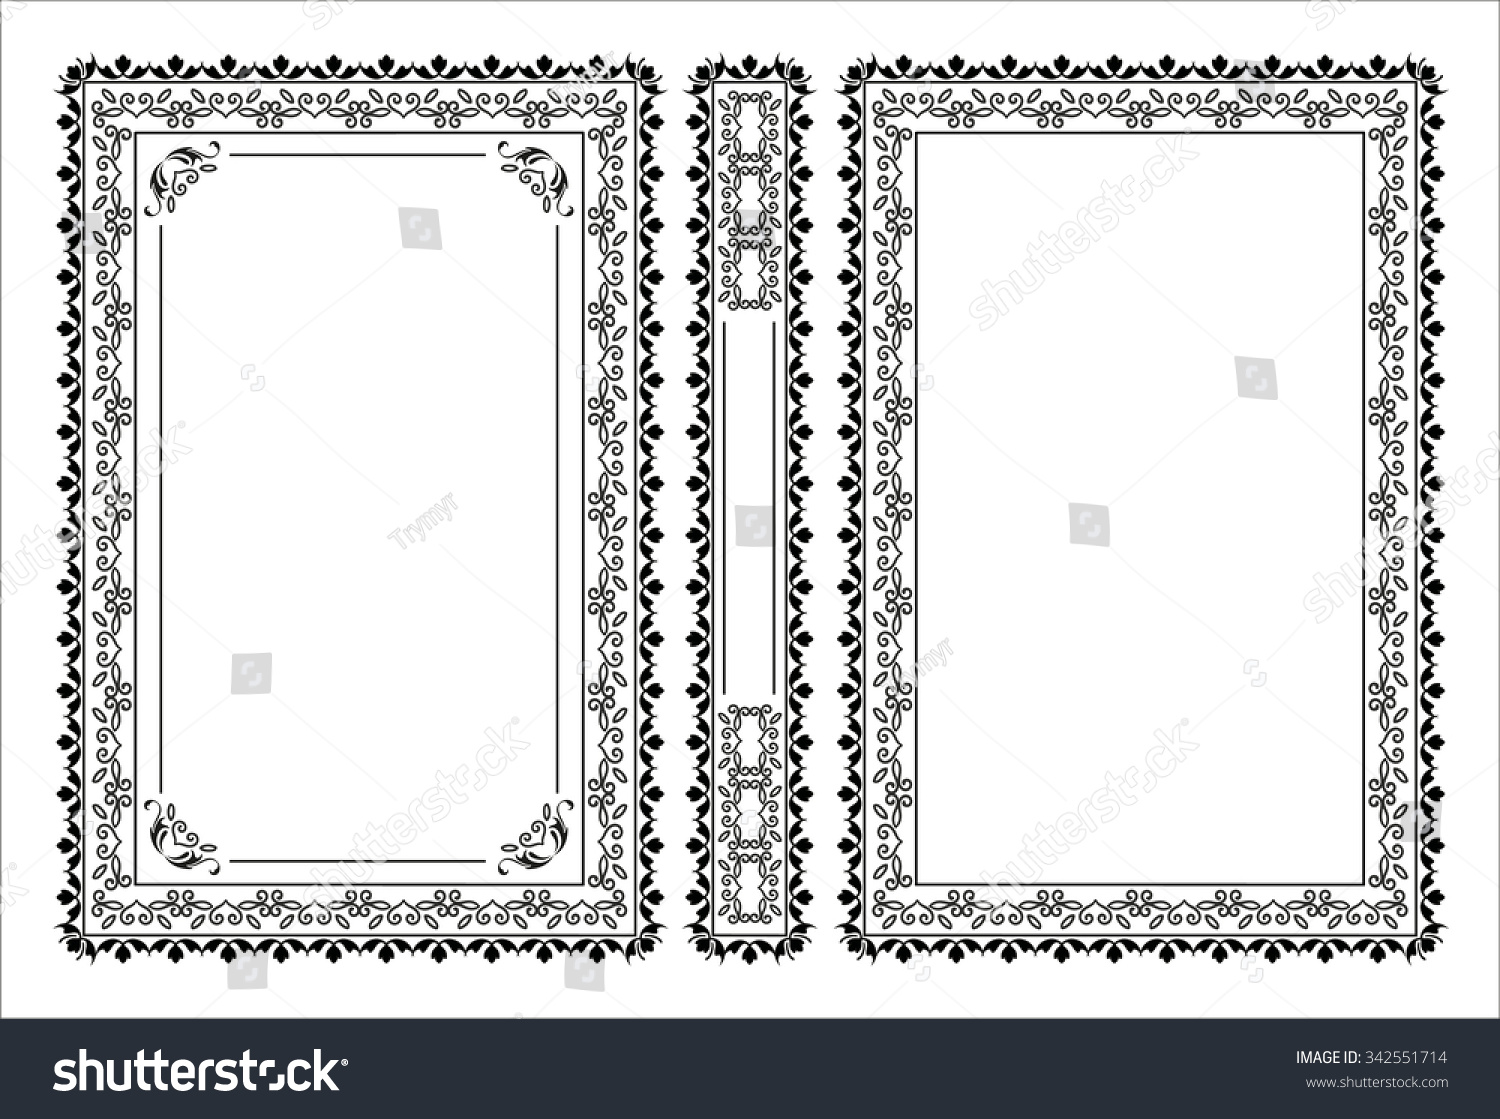 Vintage Book Cover Frame ~ Vector vintage frames and borders set victorian book covers and